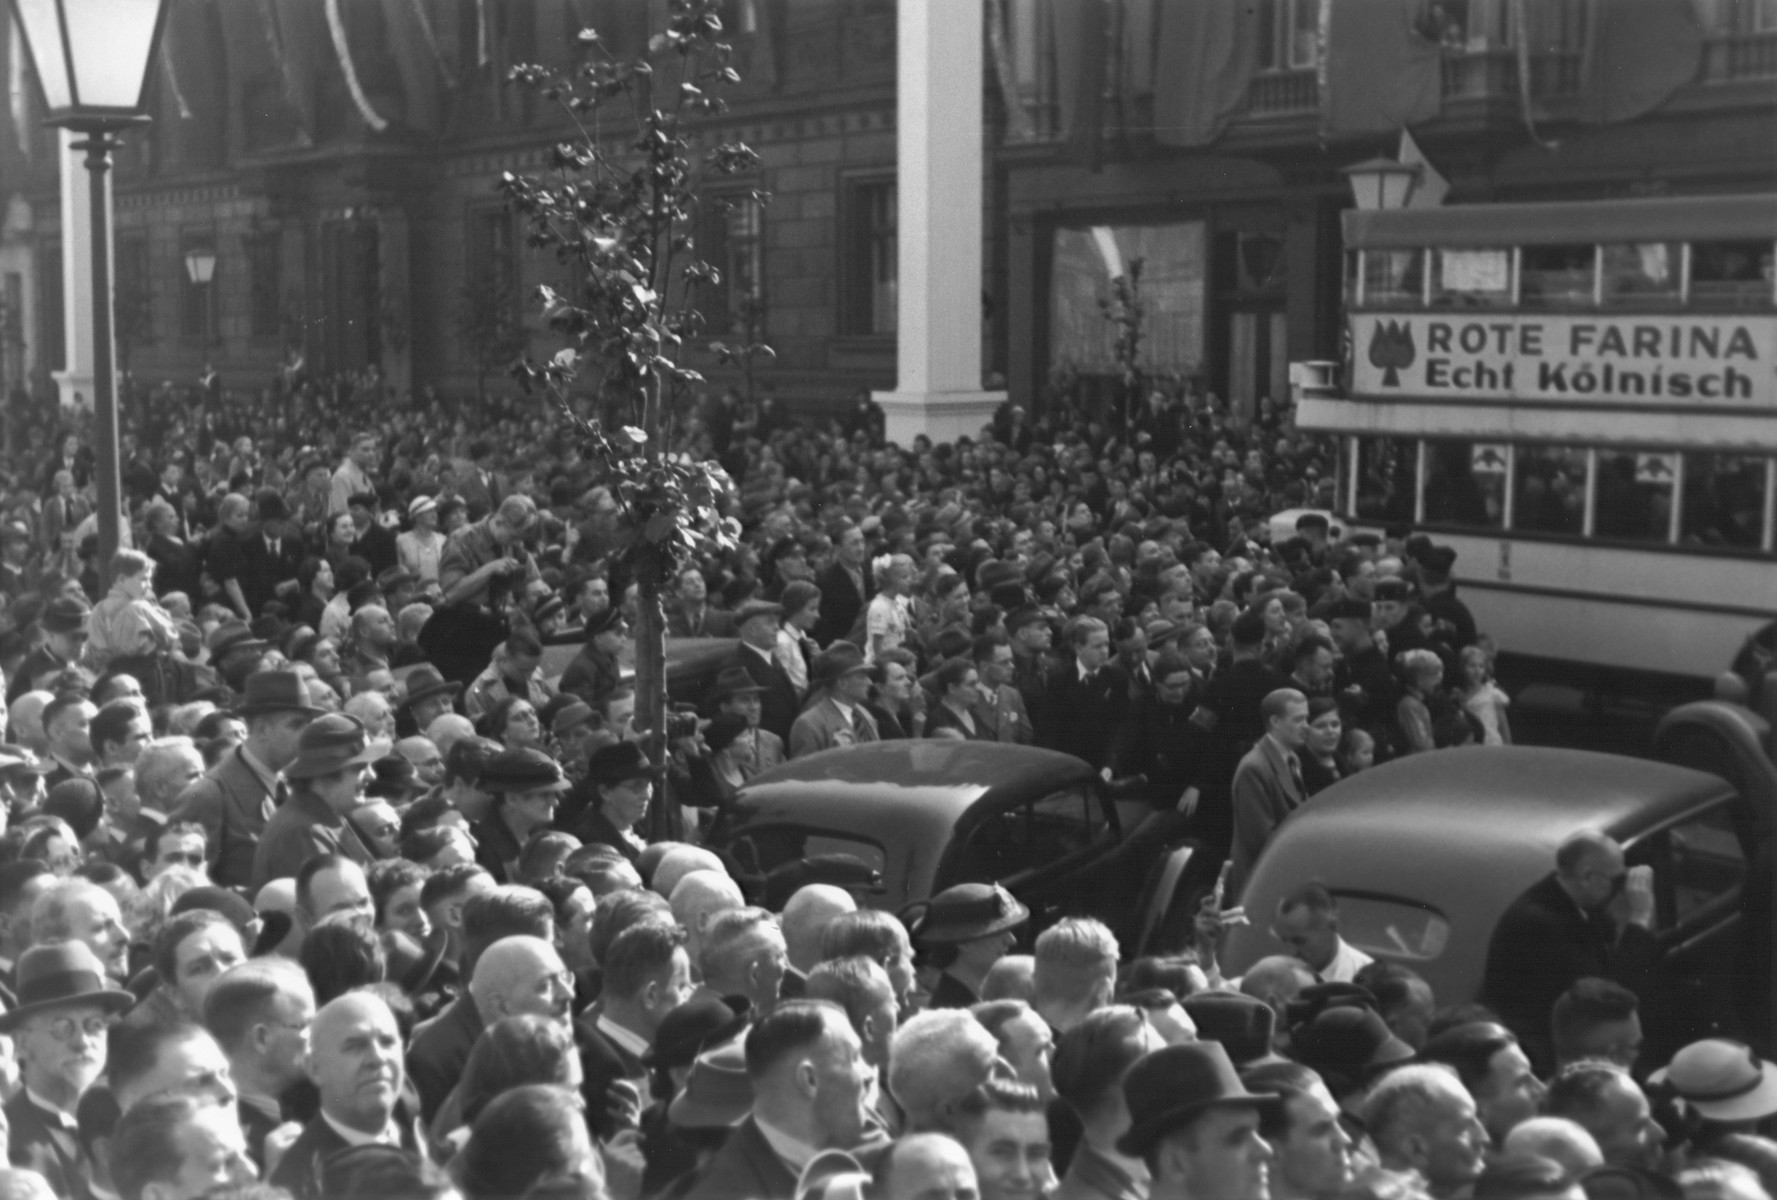 A large crowd of Germans fills the streets of Cologne during a Nazi rally.